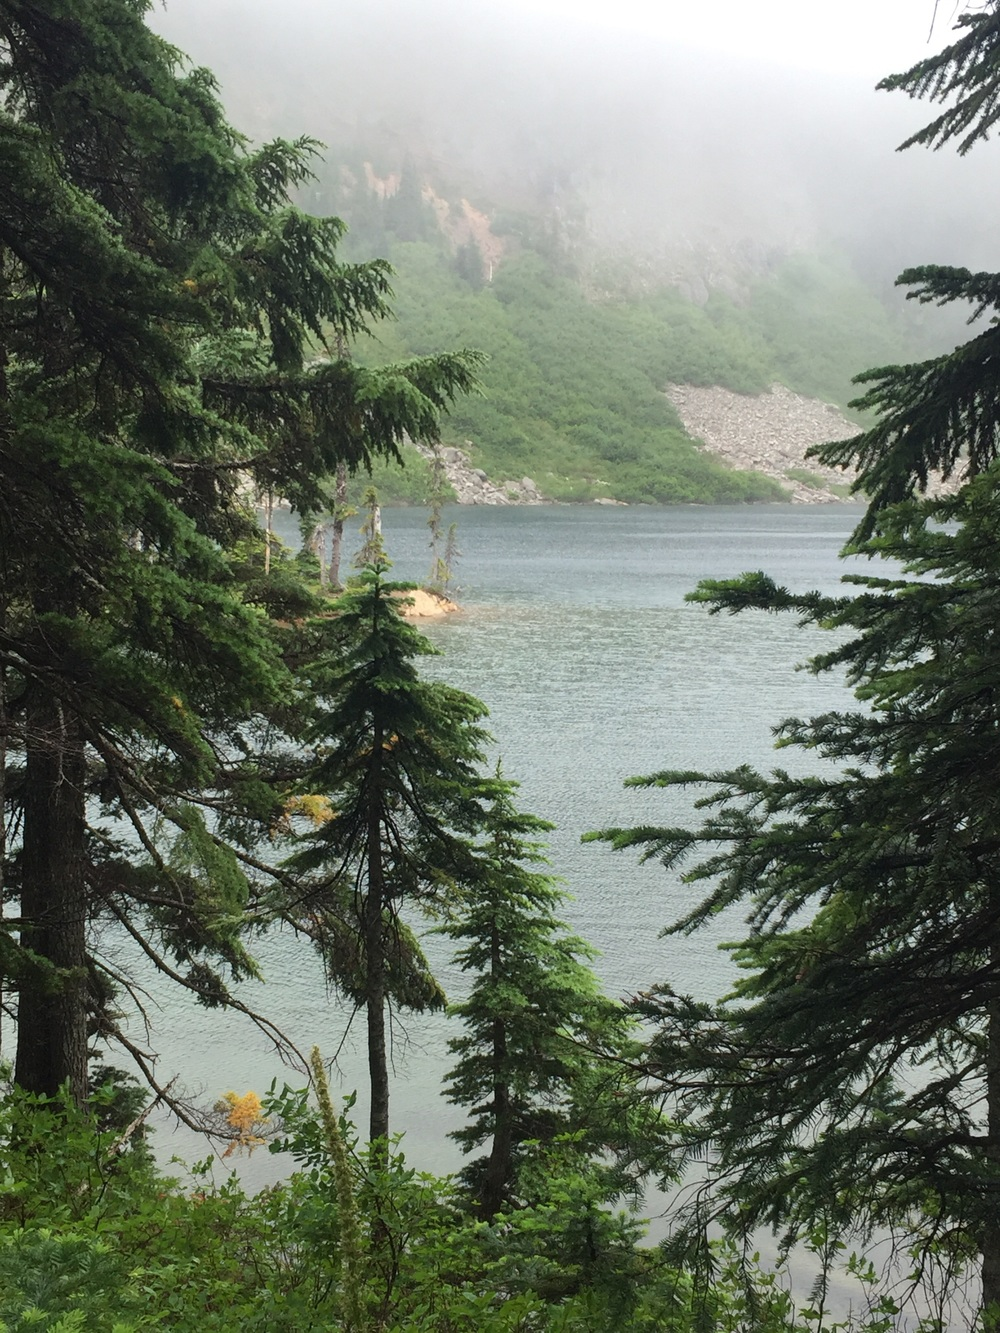 Blue Lake in roaring fog. No campers, no mosquitos.